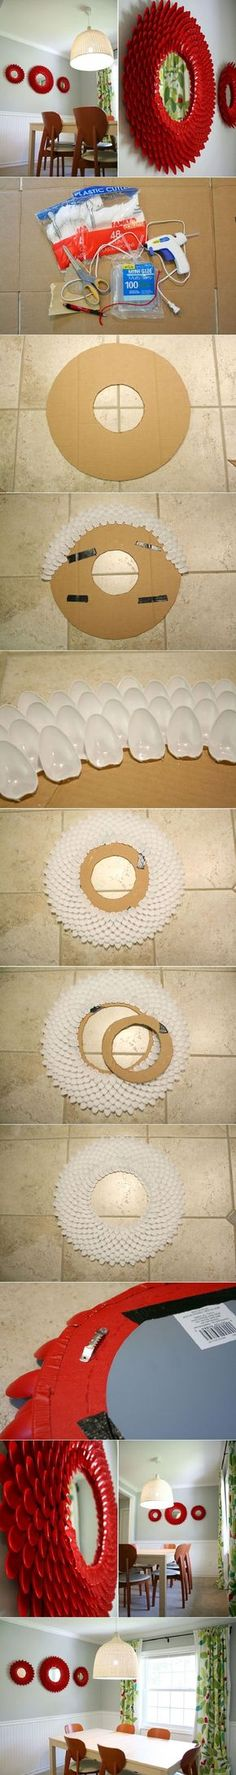 DIY Decorative Chrysanthemum Mirror with Plastic Spoons - 16 DIY Decor Crafts for Your Home | GleamItUp